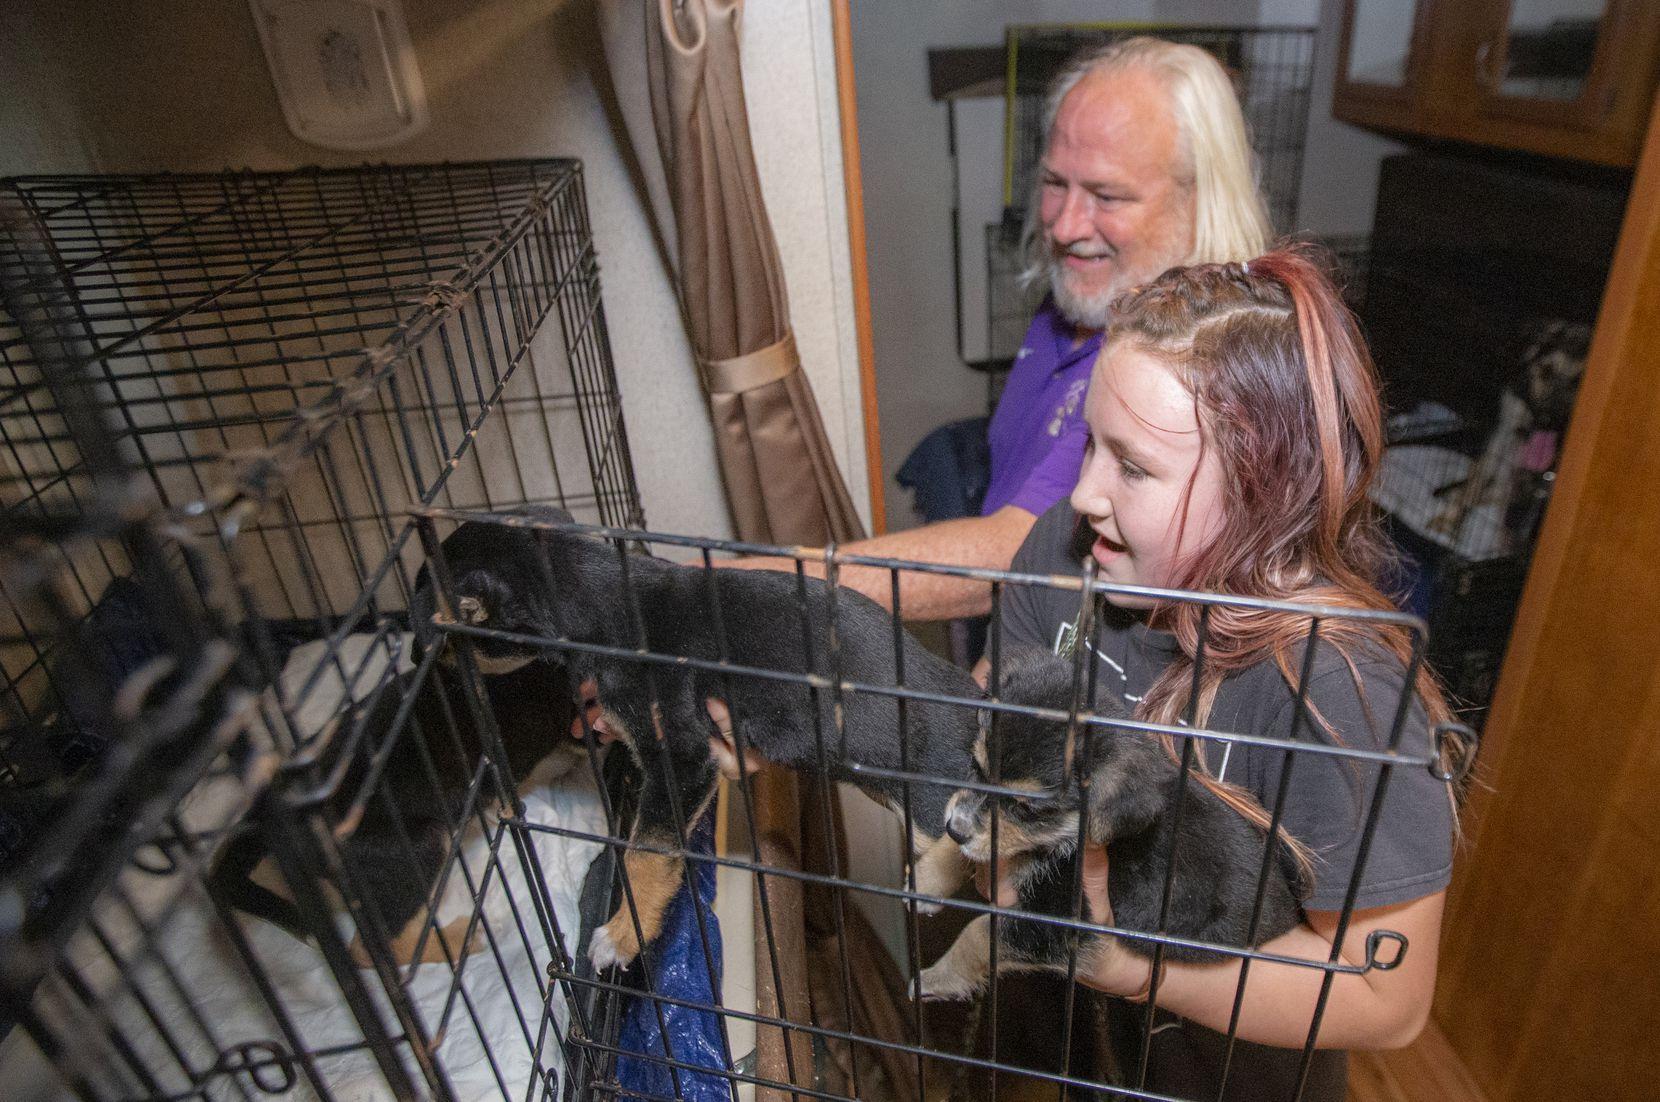 """James Harbor helps Logan Fessler, 12, place several rescue puppies into a cage for transport from the Wise County Animal Shelter in Decatur to their new homes in Illinois and Wisconsin. """"We love dogs and want to run our own animal shelter when we're older,"""" Fessler says of herself and her sister."""